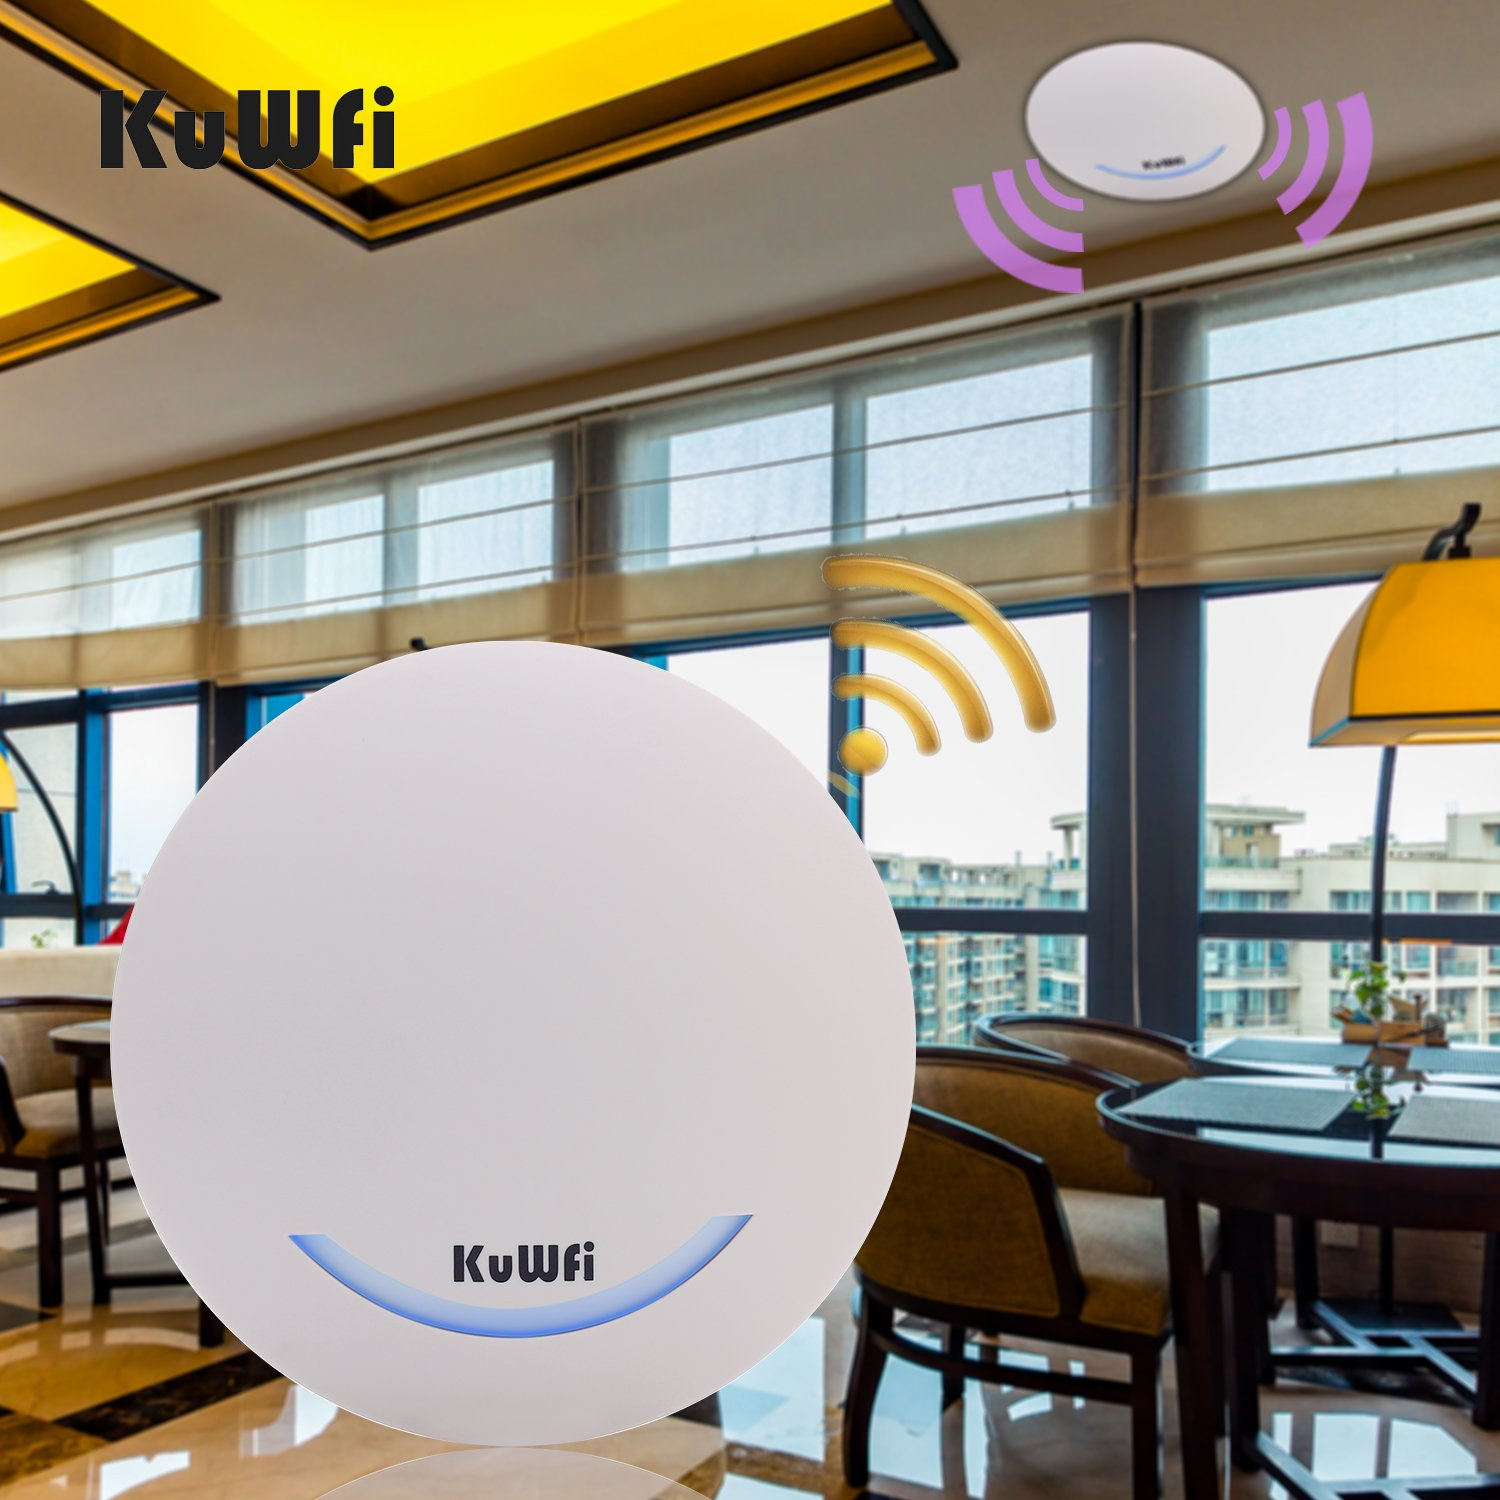 KuWFi 600Mbps Wireless Router Ceiling Mount Dual Band 802.11AC Indoor ceiling mounted wireless router Wifi Repeater Wifi Extender With 24V POE Power Supply by KuWFi